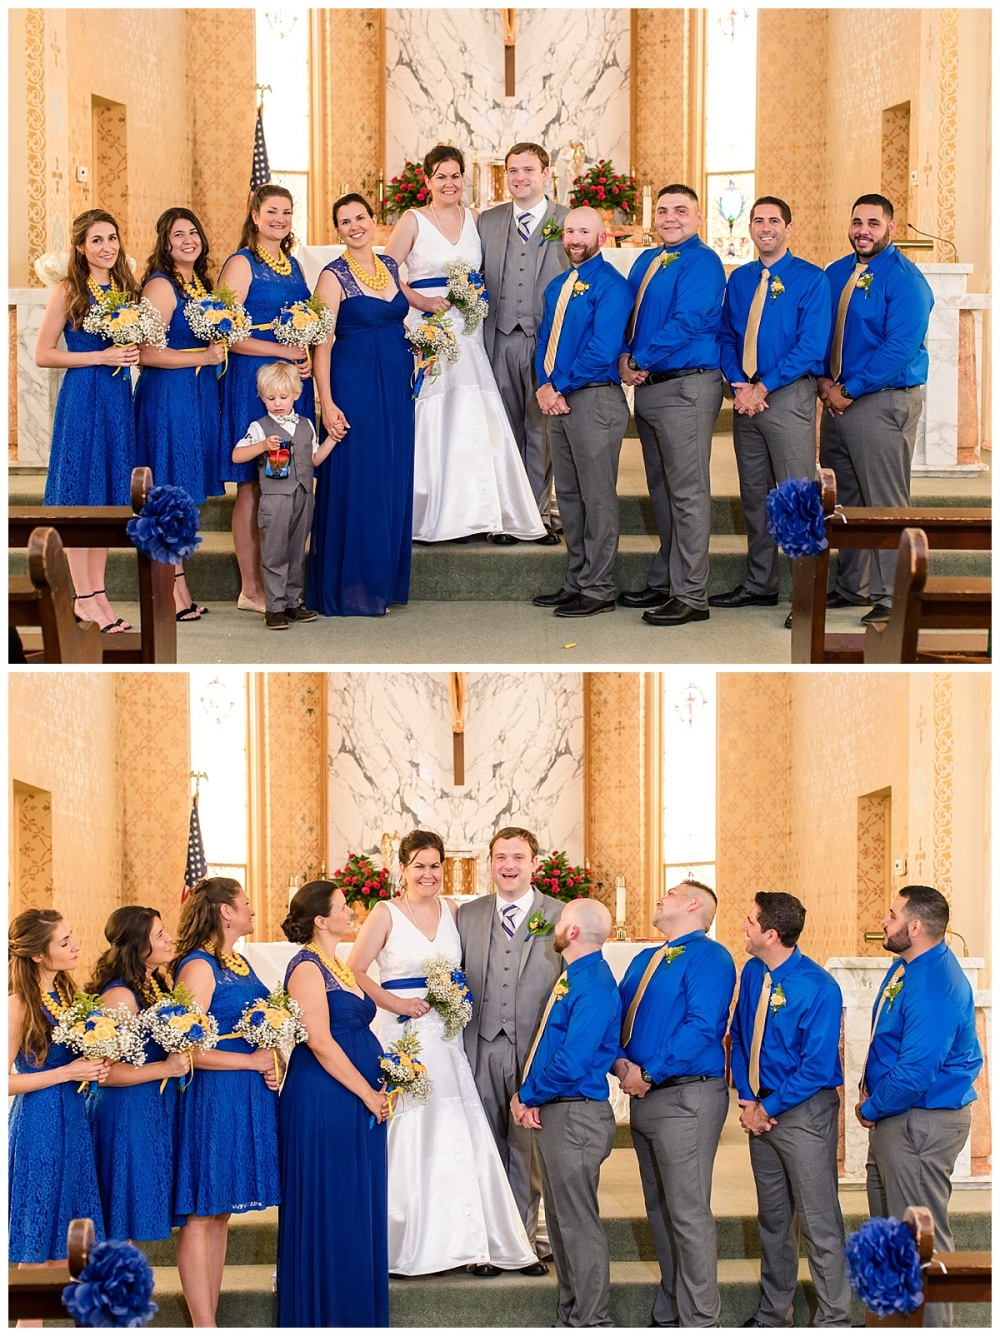 Texas-Wedding-Photographer-La-Coste-Our-Lady-Of-Grace-Church-Bride-Groom-Lego-Theme-Carly-Barton-Photography_0035.jpg